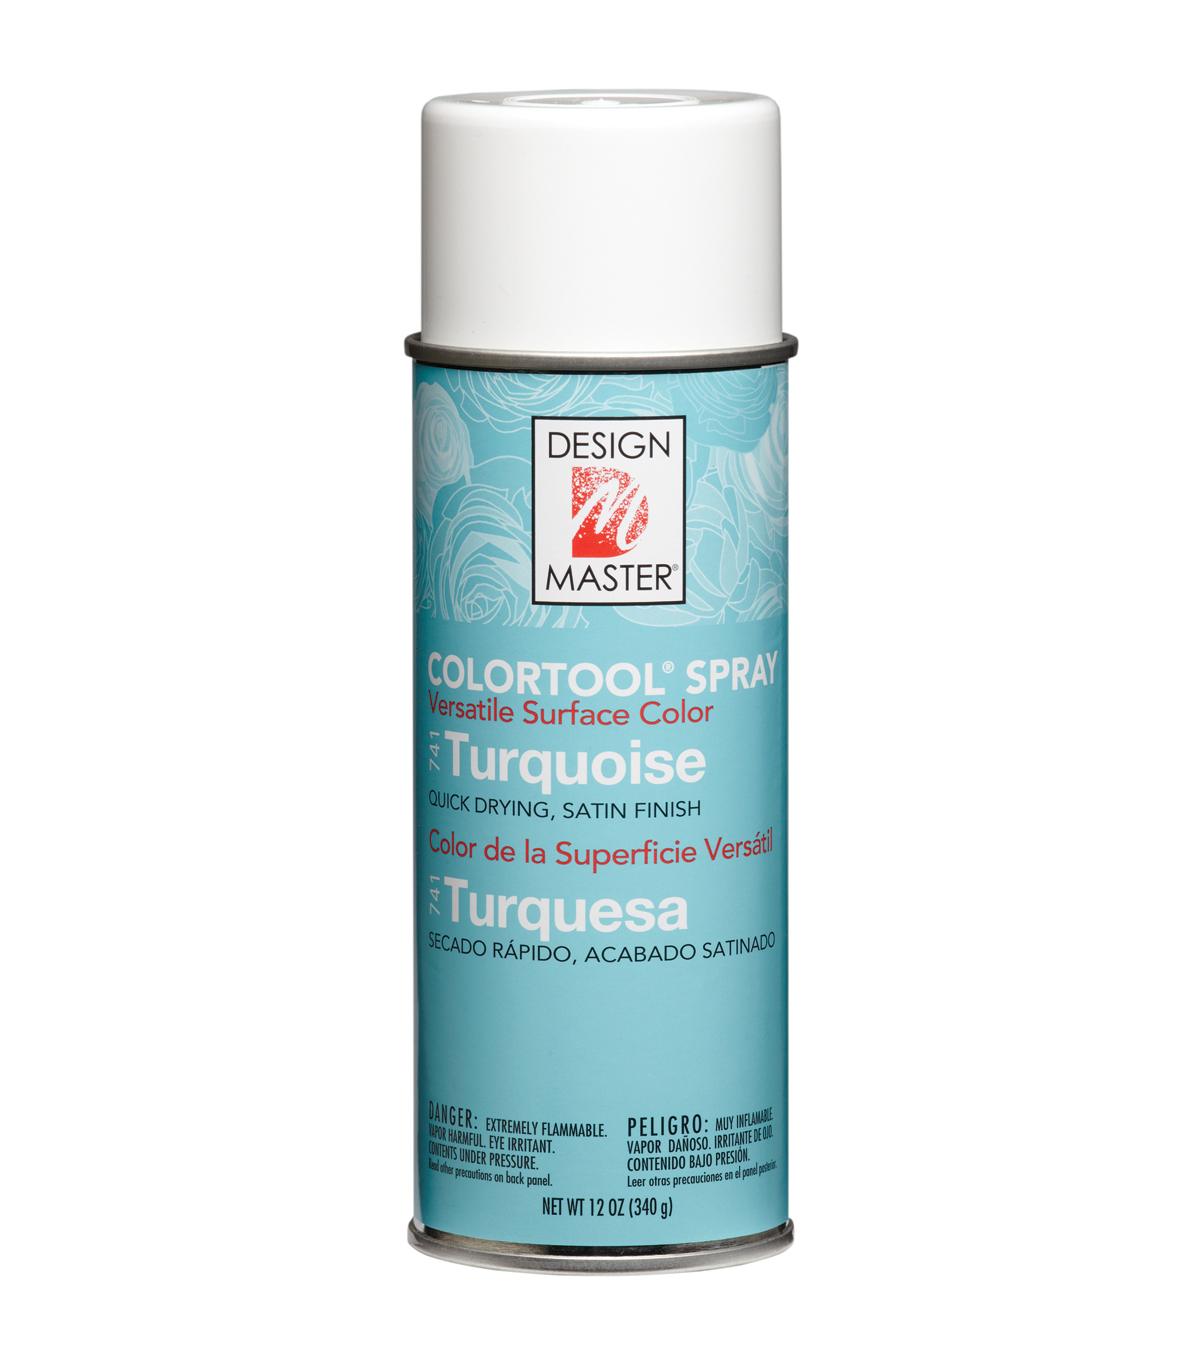 Colortool Floral Spray Paint 12 Ounces-Turquoise